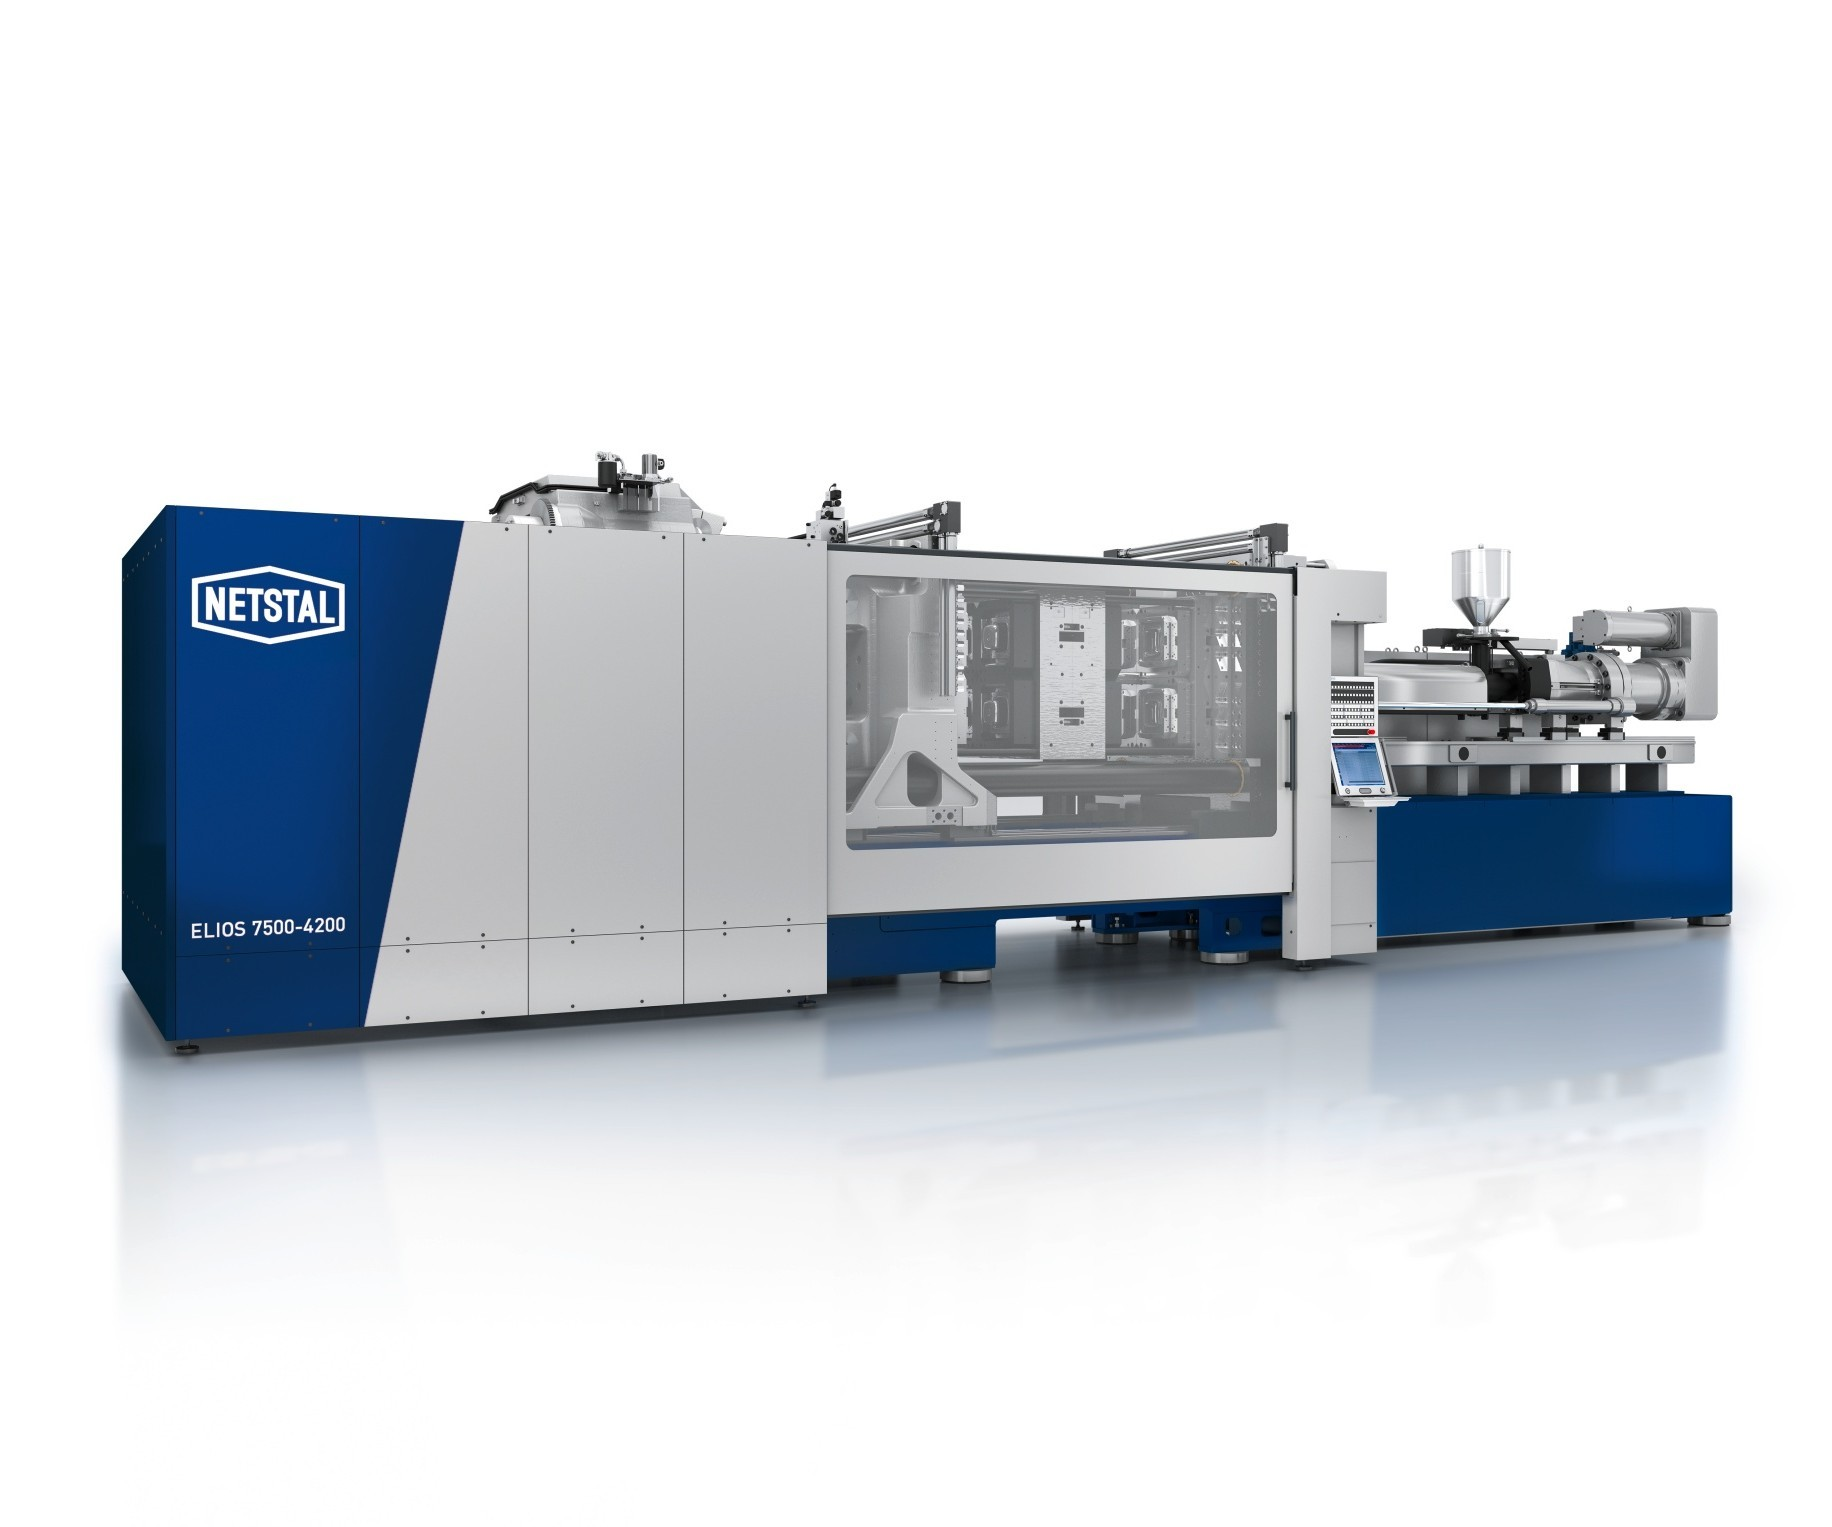 Netstal Elios series injection molding machine